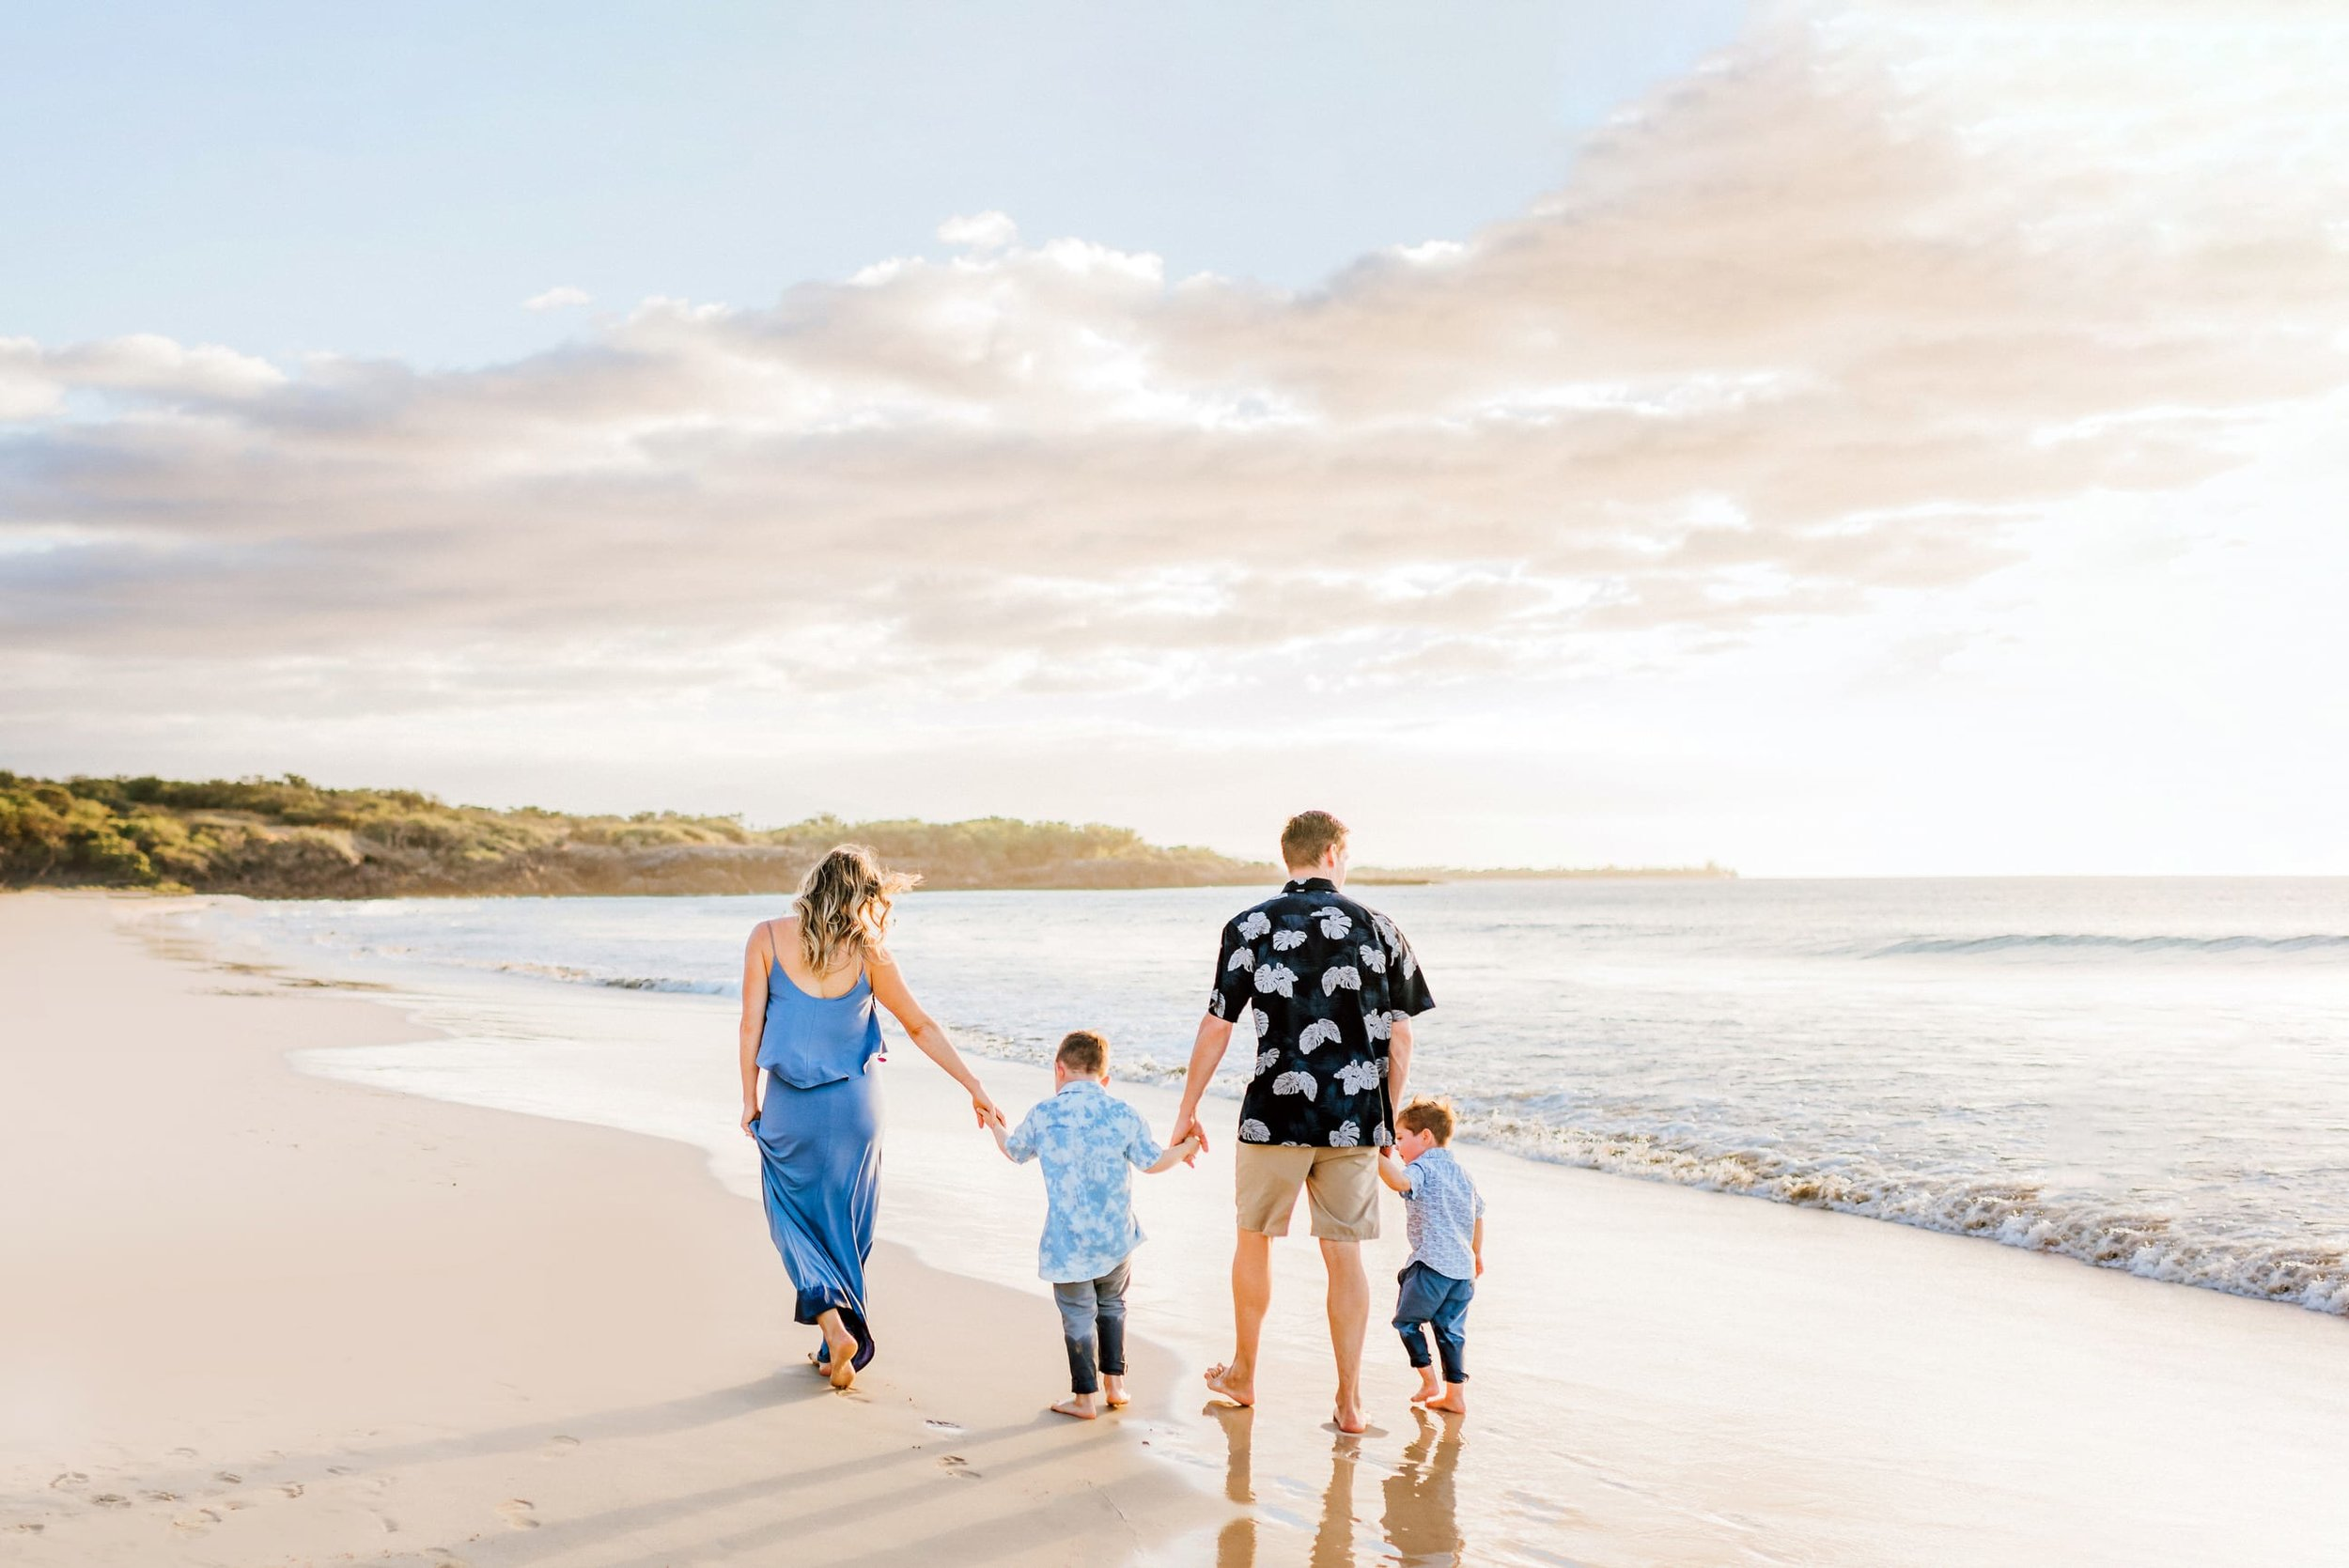 Hawaii-Family-Photographer-Hapuna-Beach-5.jpg